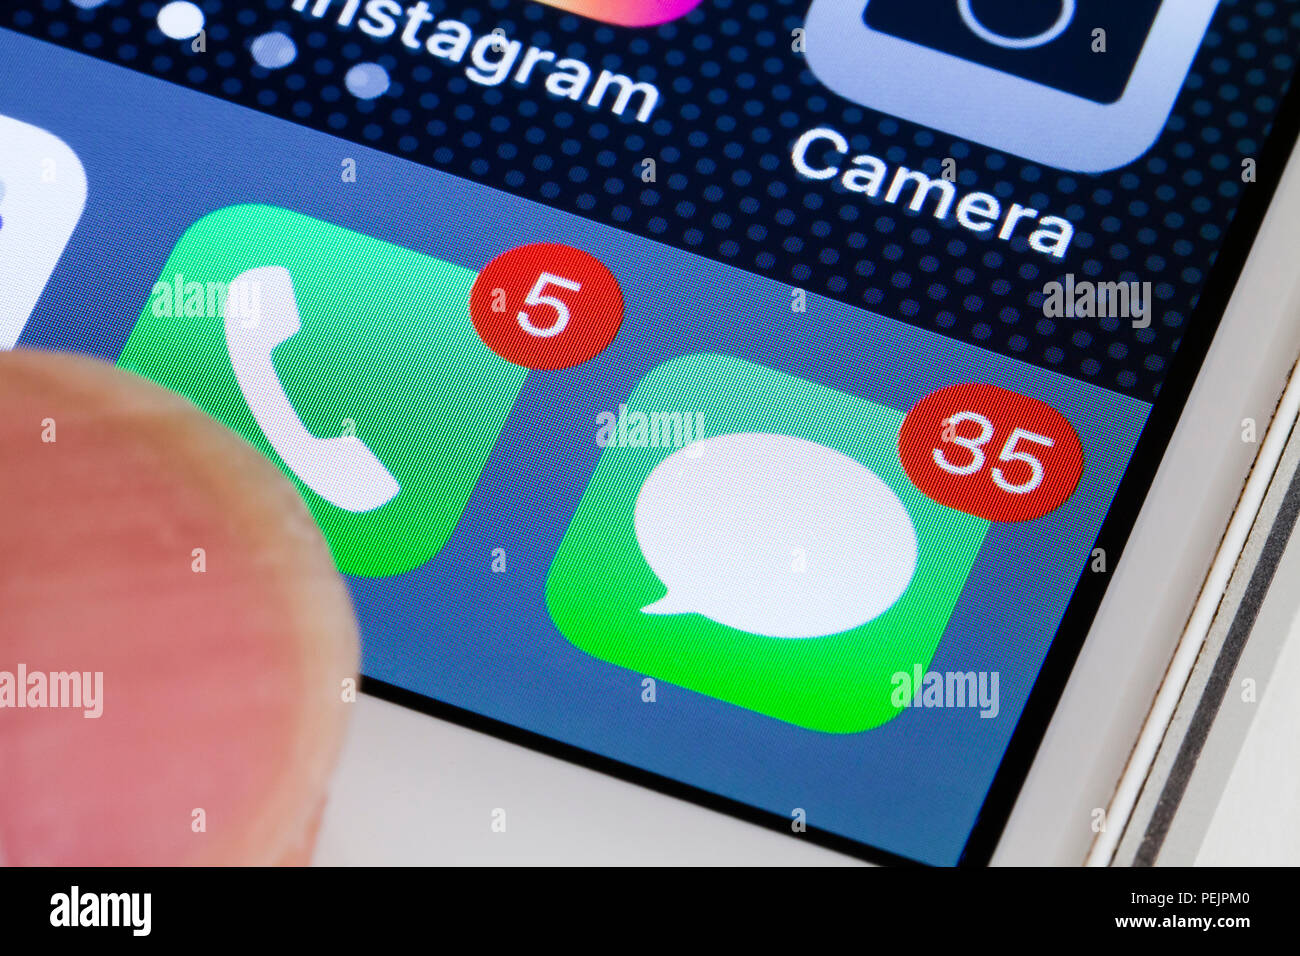 iPhone Phone and Messages icons showing missed calls notification badge (badges) - USA - Stock Image